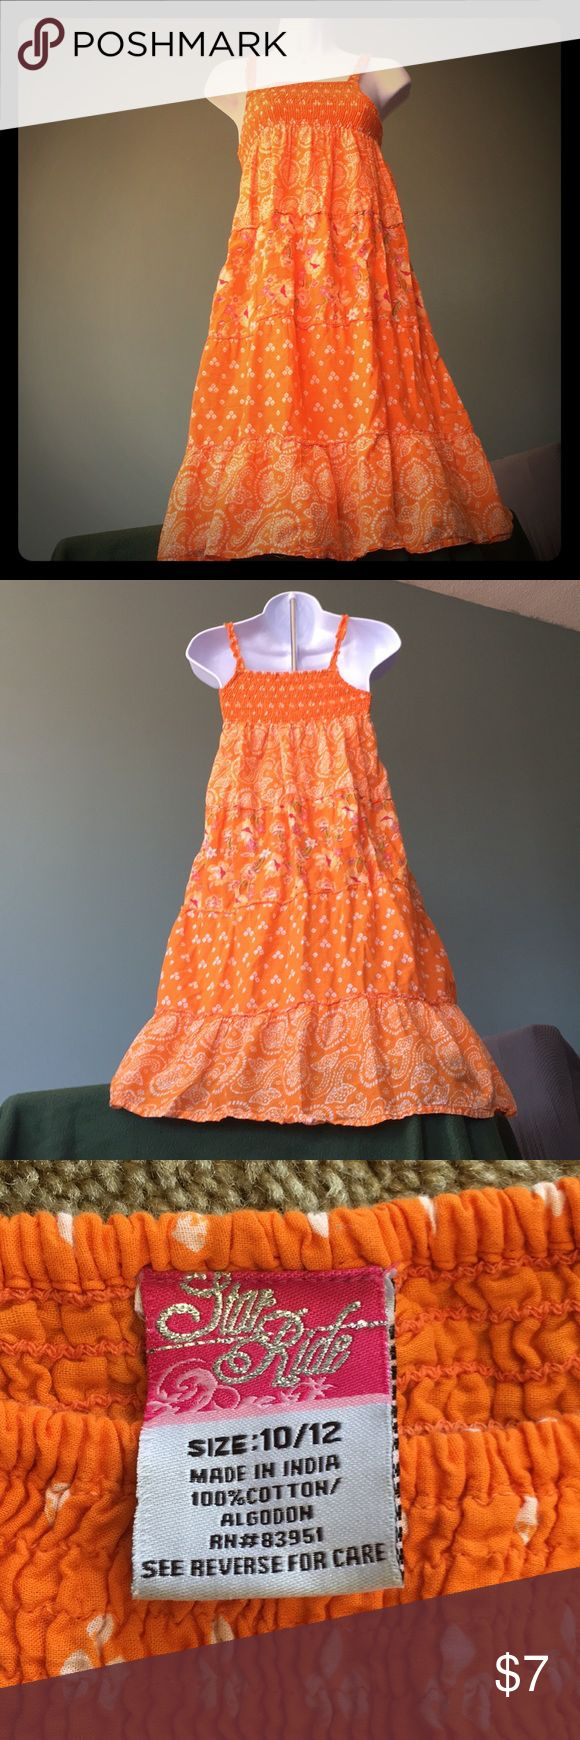 Orange sun dress. Girls 10-12. EUC. Lined Daughter wore once. Hand washed. Fun boho dress for girls/tween age. Solid liner from waist down to hem. Star Ride Dresses Casual